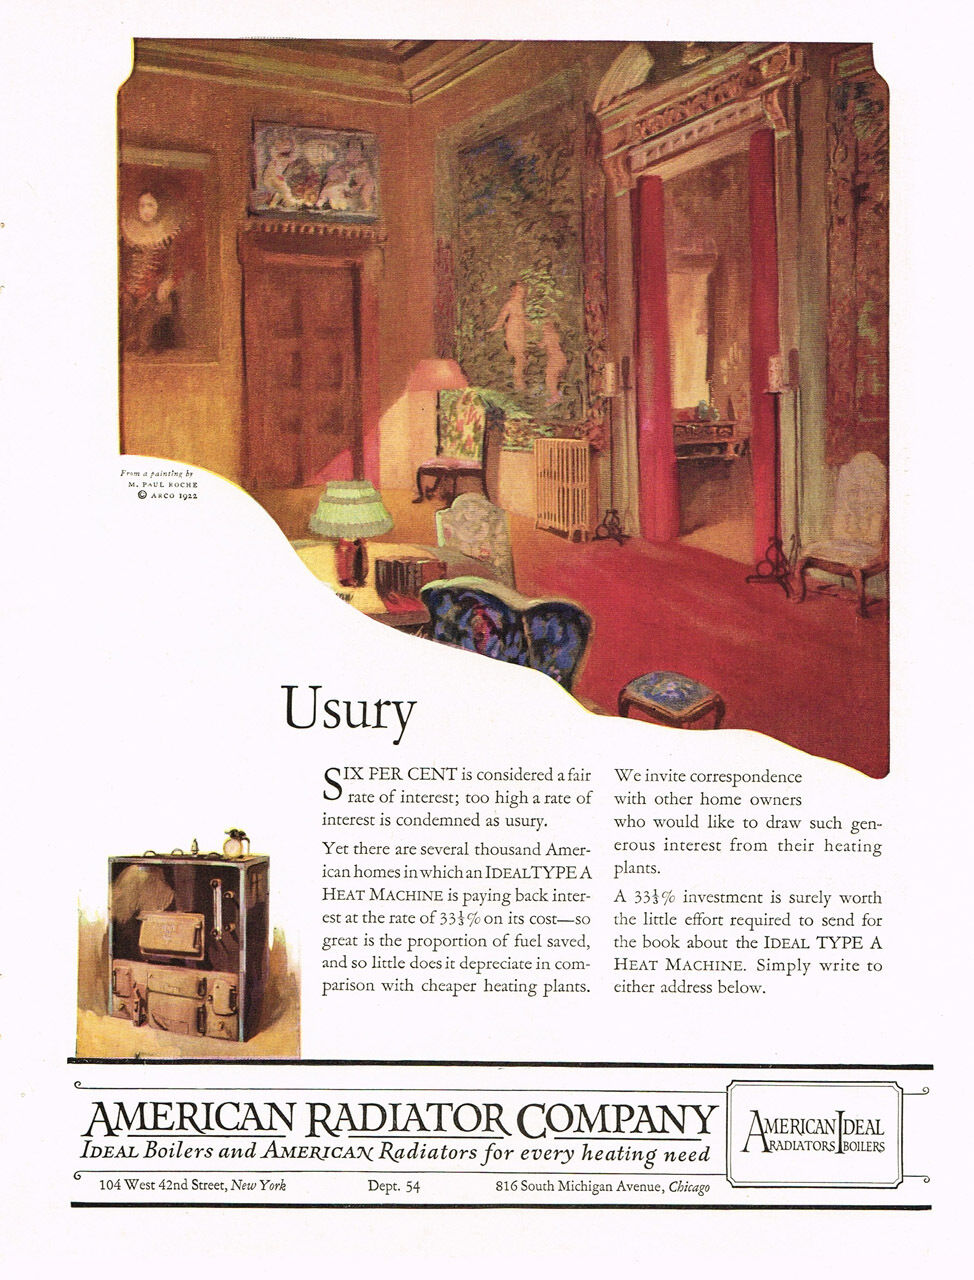 1922 AD American Radiator Company Usury-Paul Roche art advertising